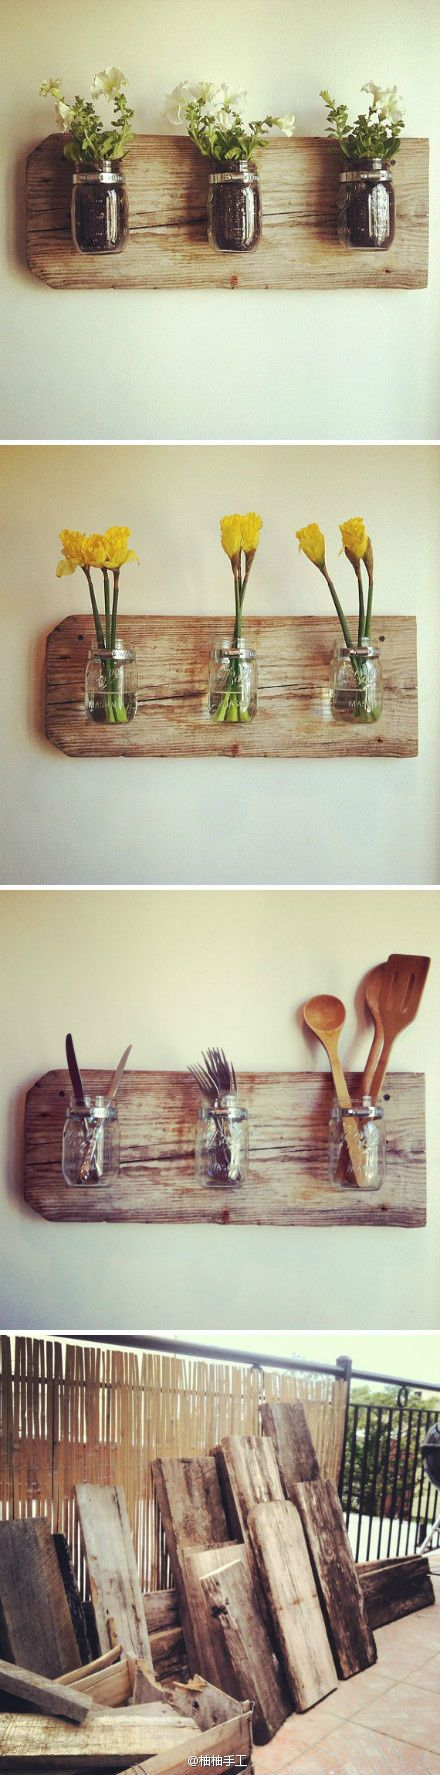 Fun idea for kitchen utensils or flowers